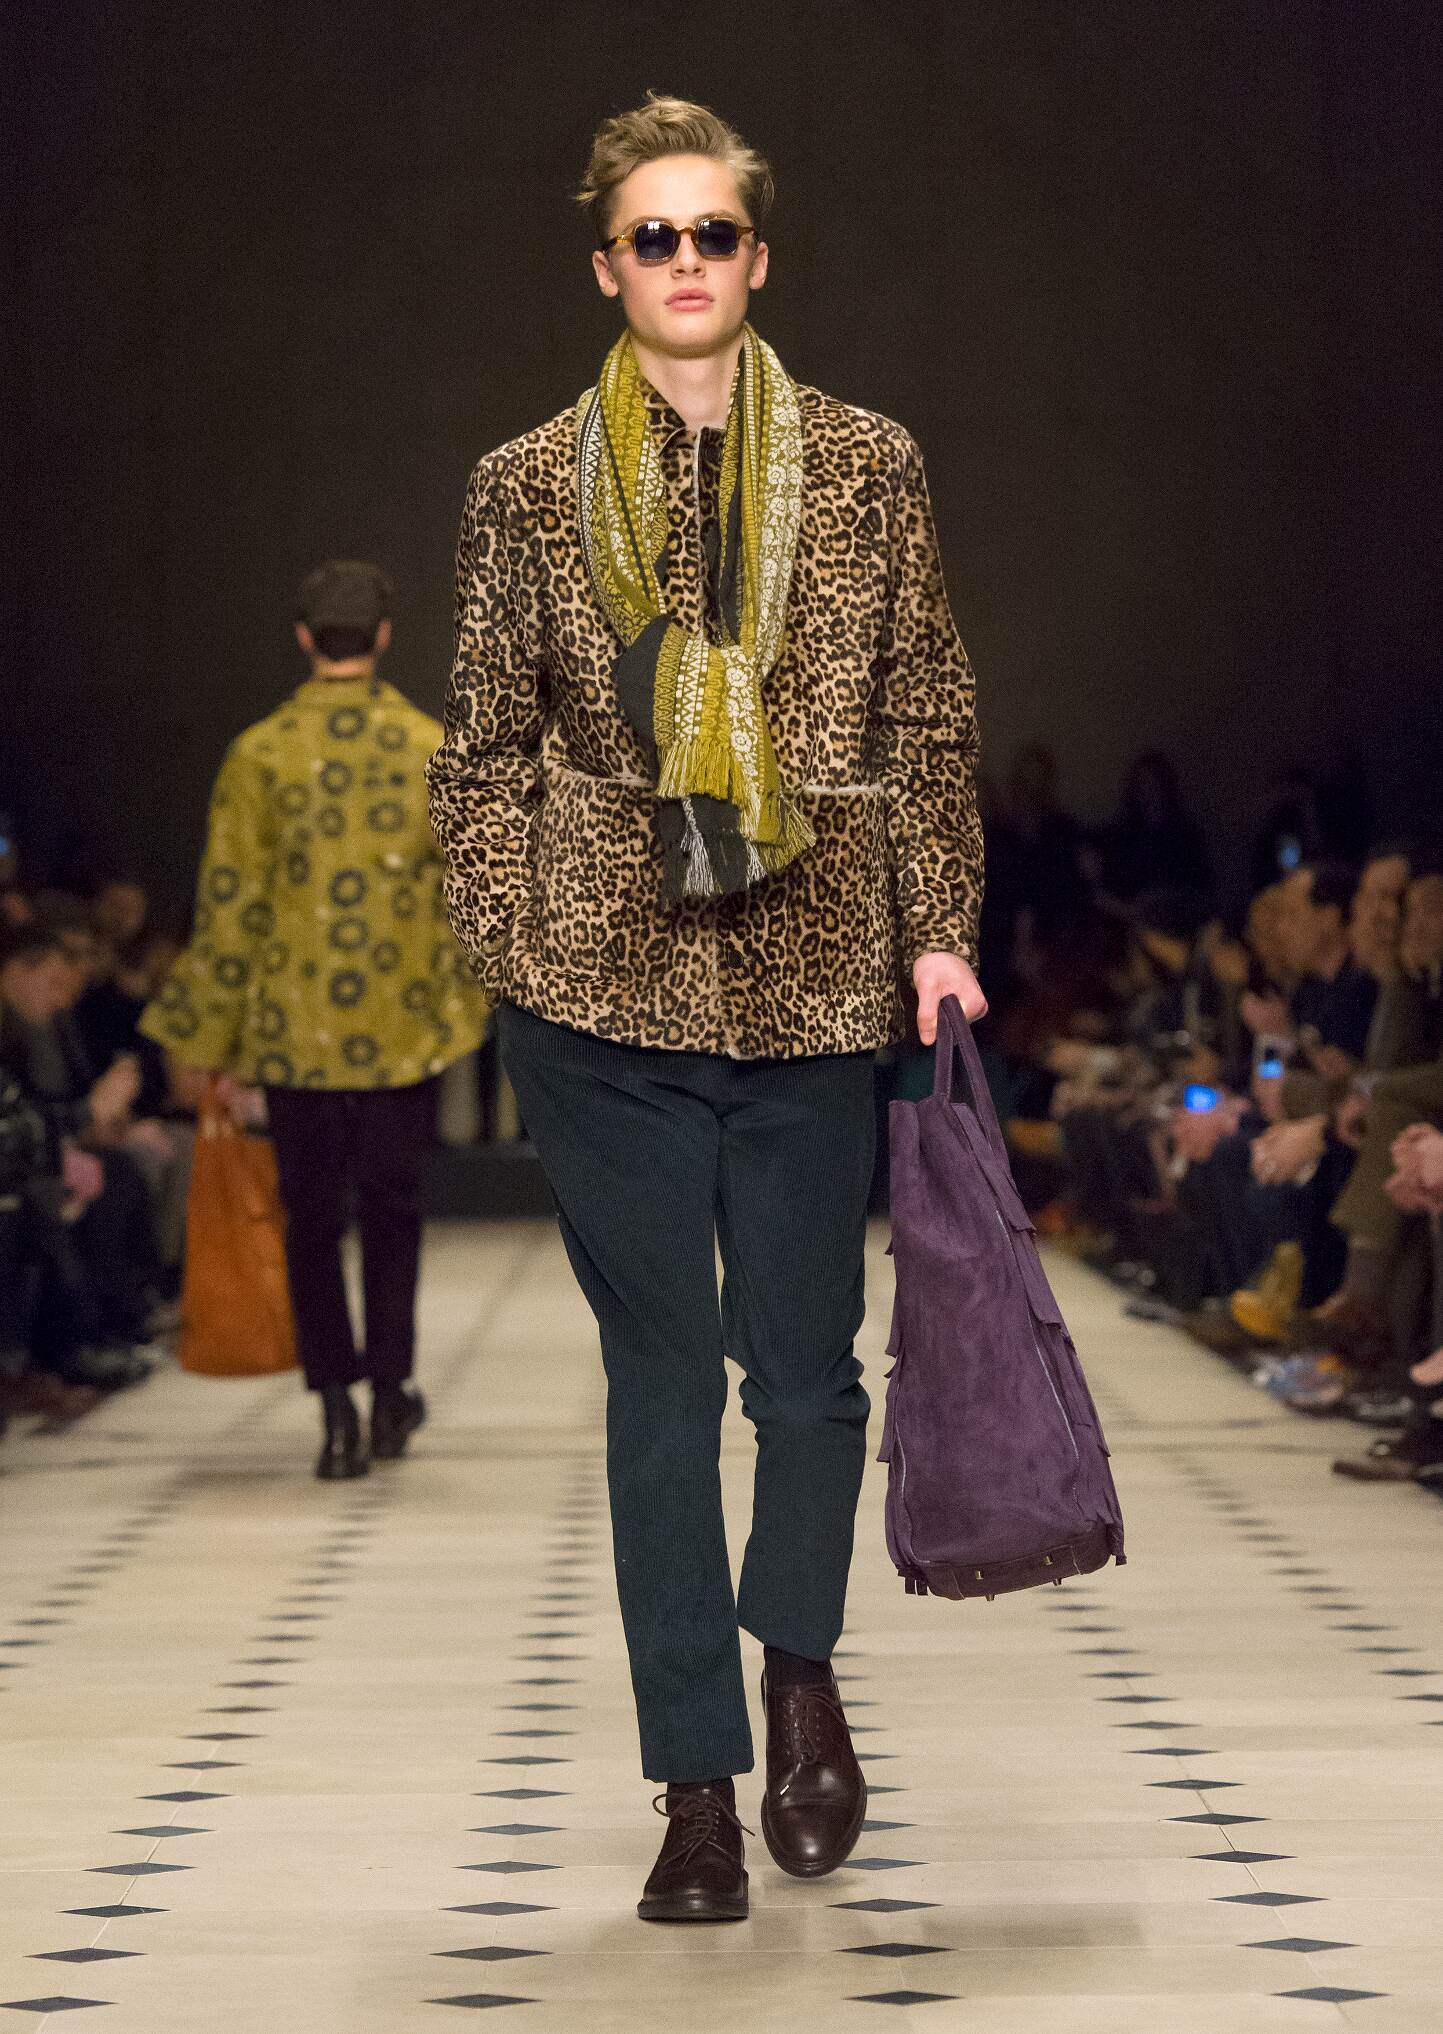 Fashion Man Model Burberry Prorsum Catwalk